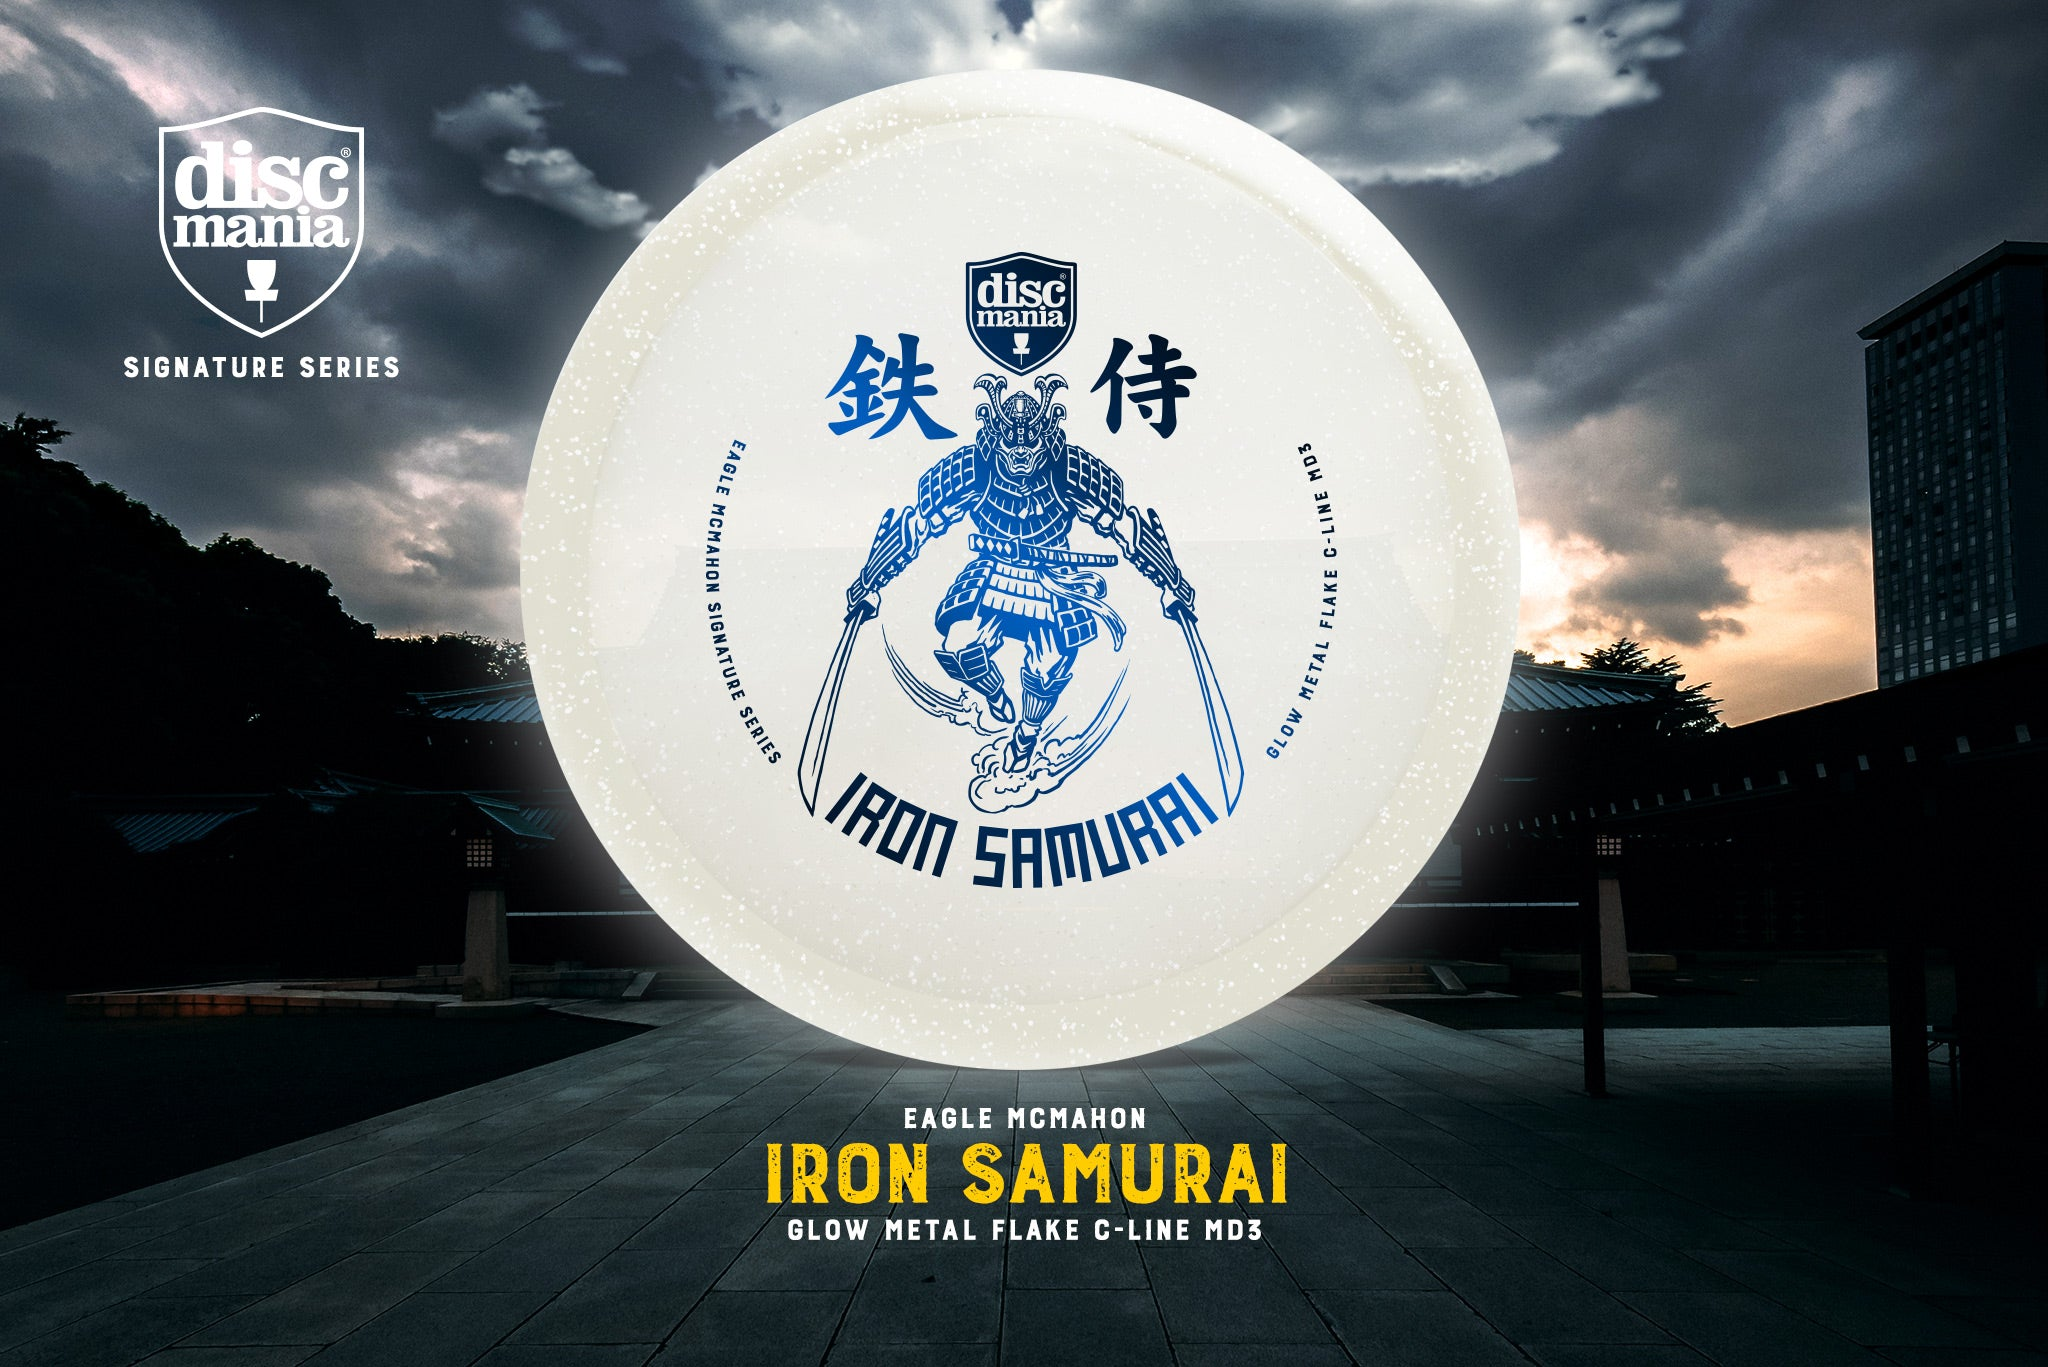 Discmania Iron Samurai MD3